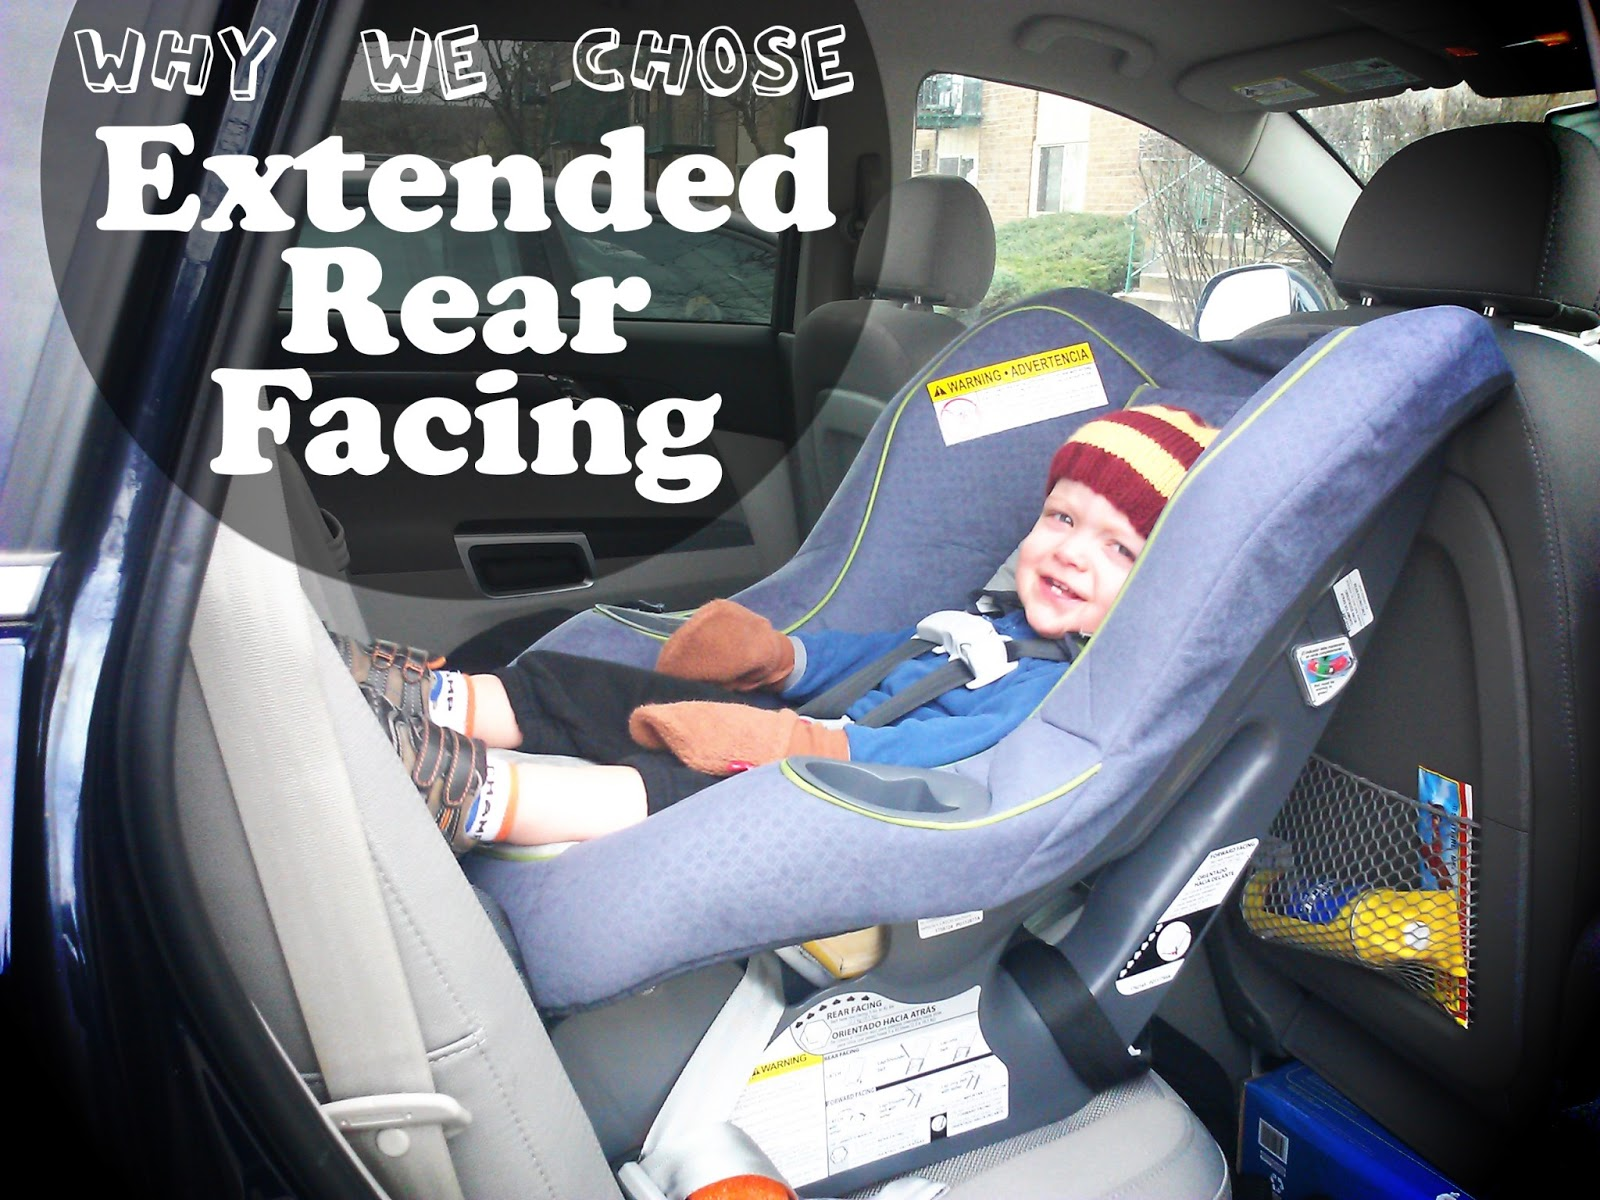 Extended Rear Facing Car Seat6